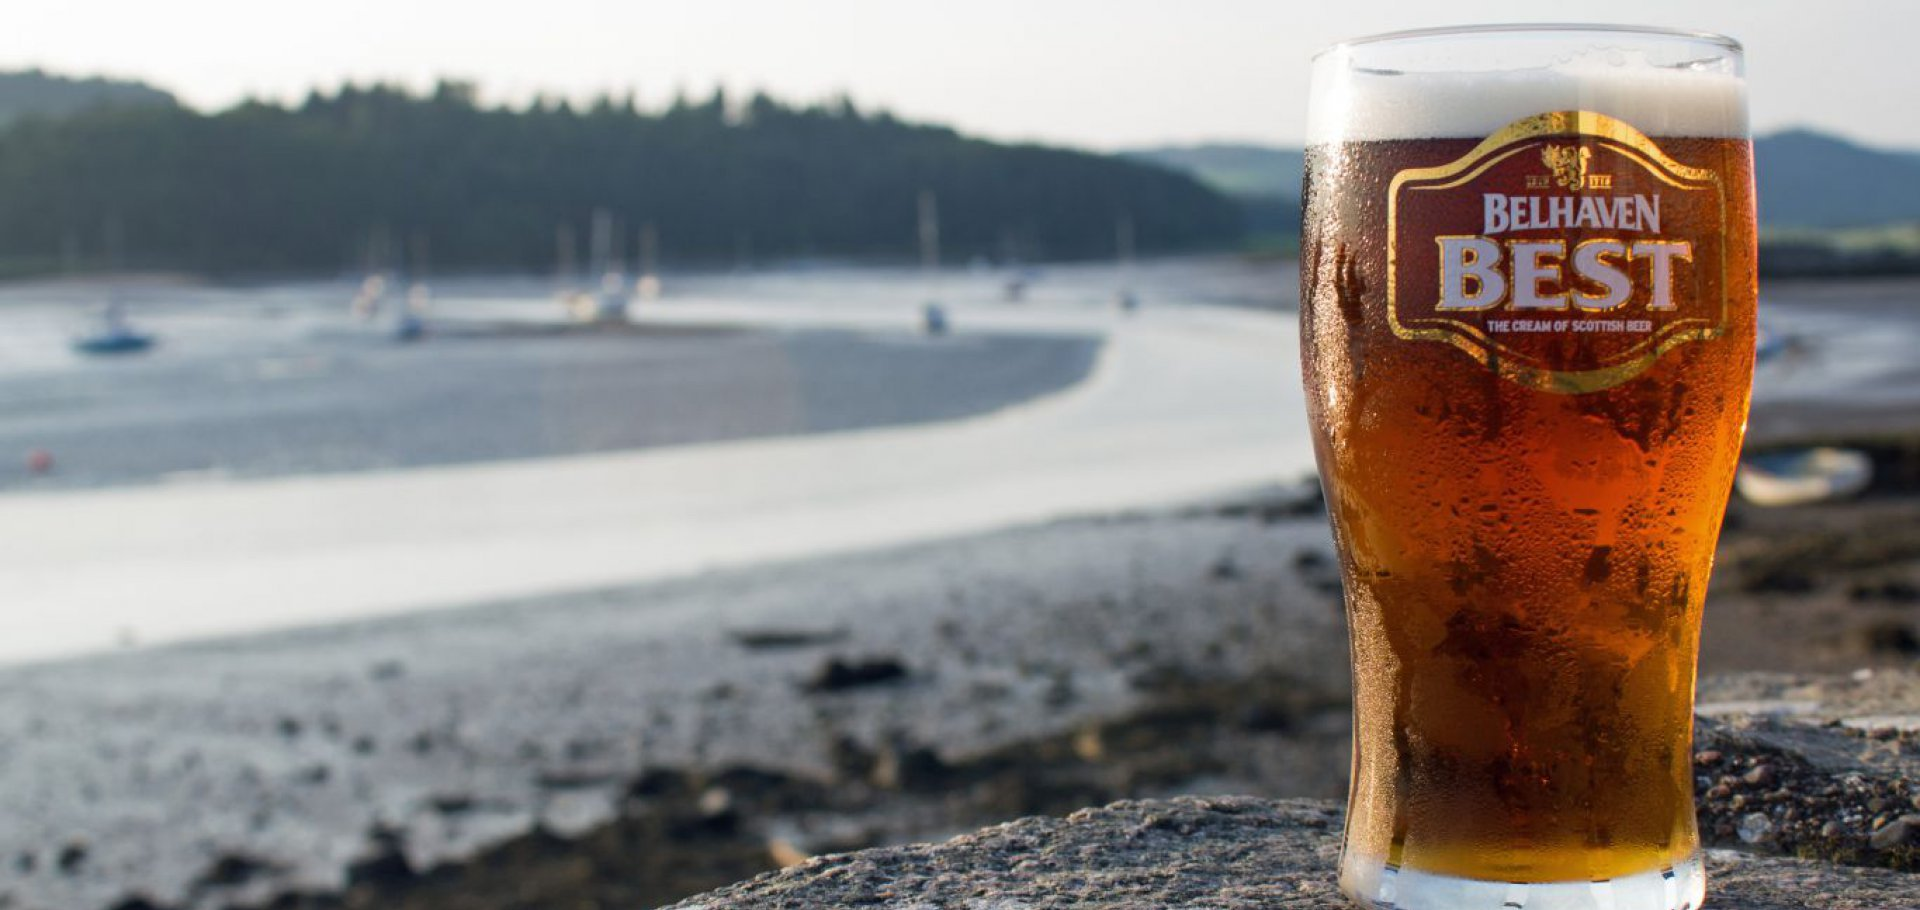 pubs in dumfries and galloway, Scotland